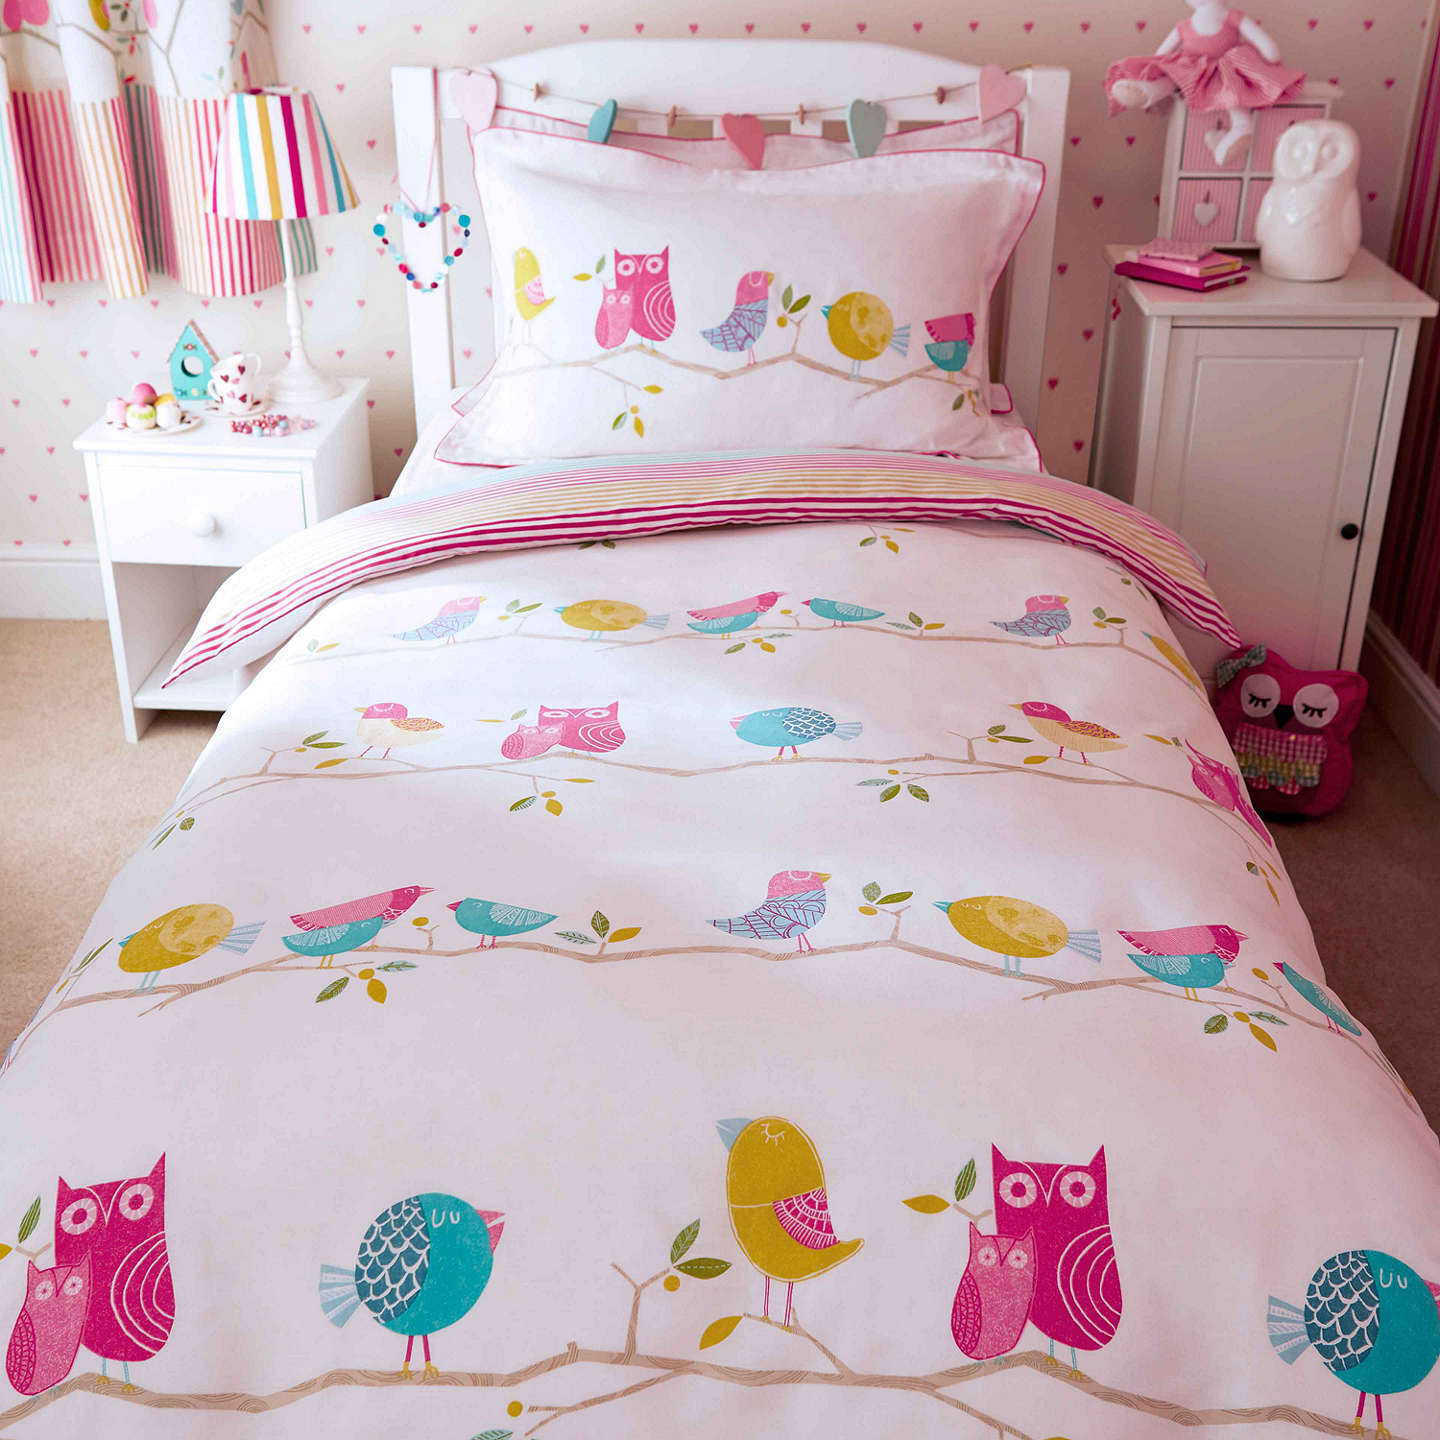 Harlequin What A Hoot Owls Duvet Cover And Pillowcase Set Double Online At Johnlewis